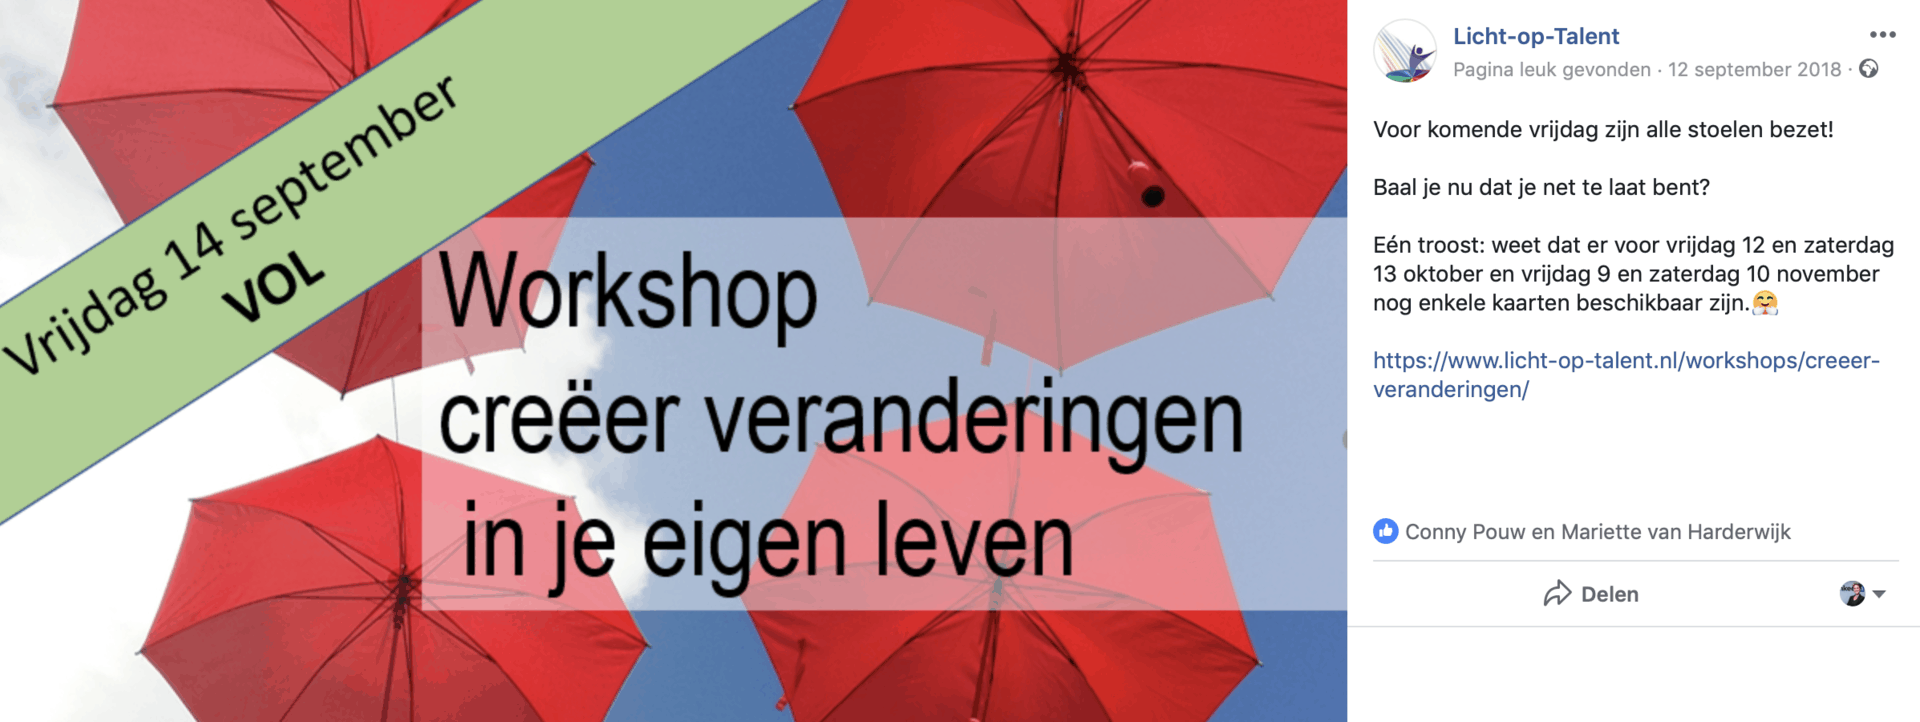 Workshop Vol - hoe zet je social media in - Trudy Pannekeet